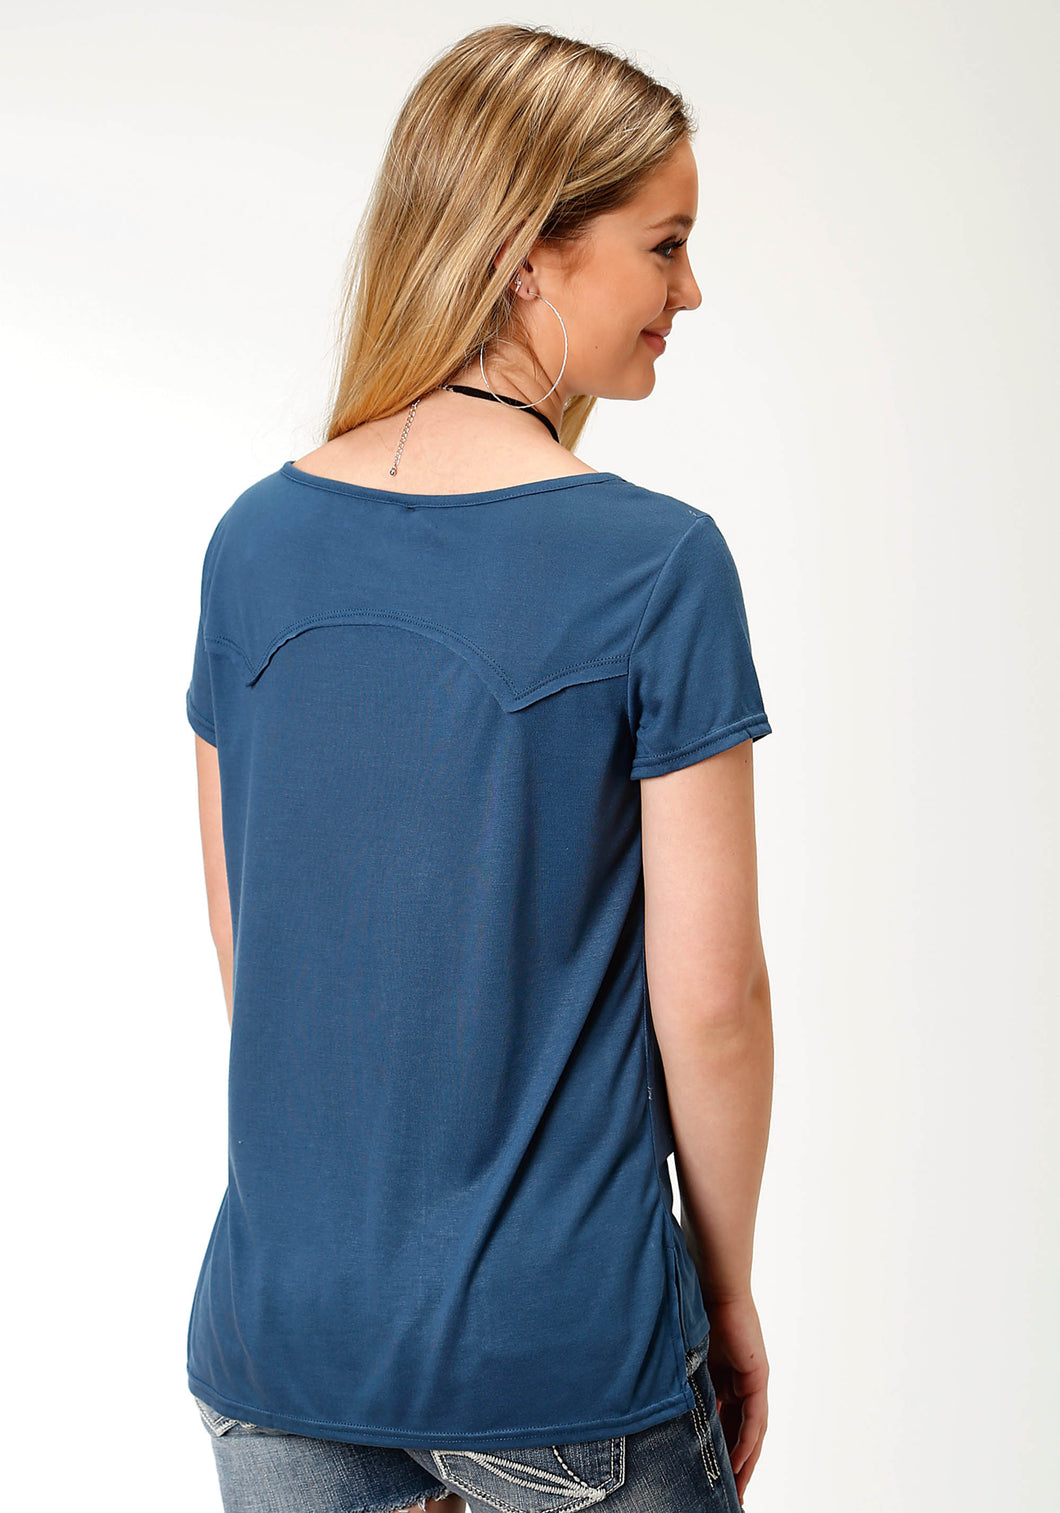 Five Star Collection- Spring Iii 5star Womens Short Sleeve 3126 Poly Rayon Jersey Scoop Neck Top